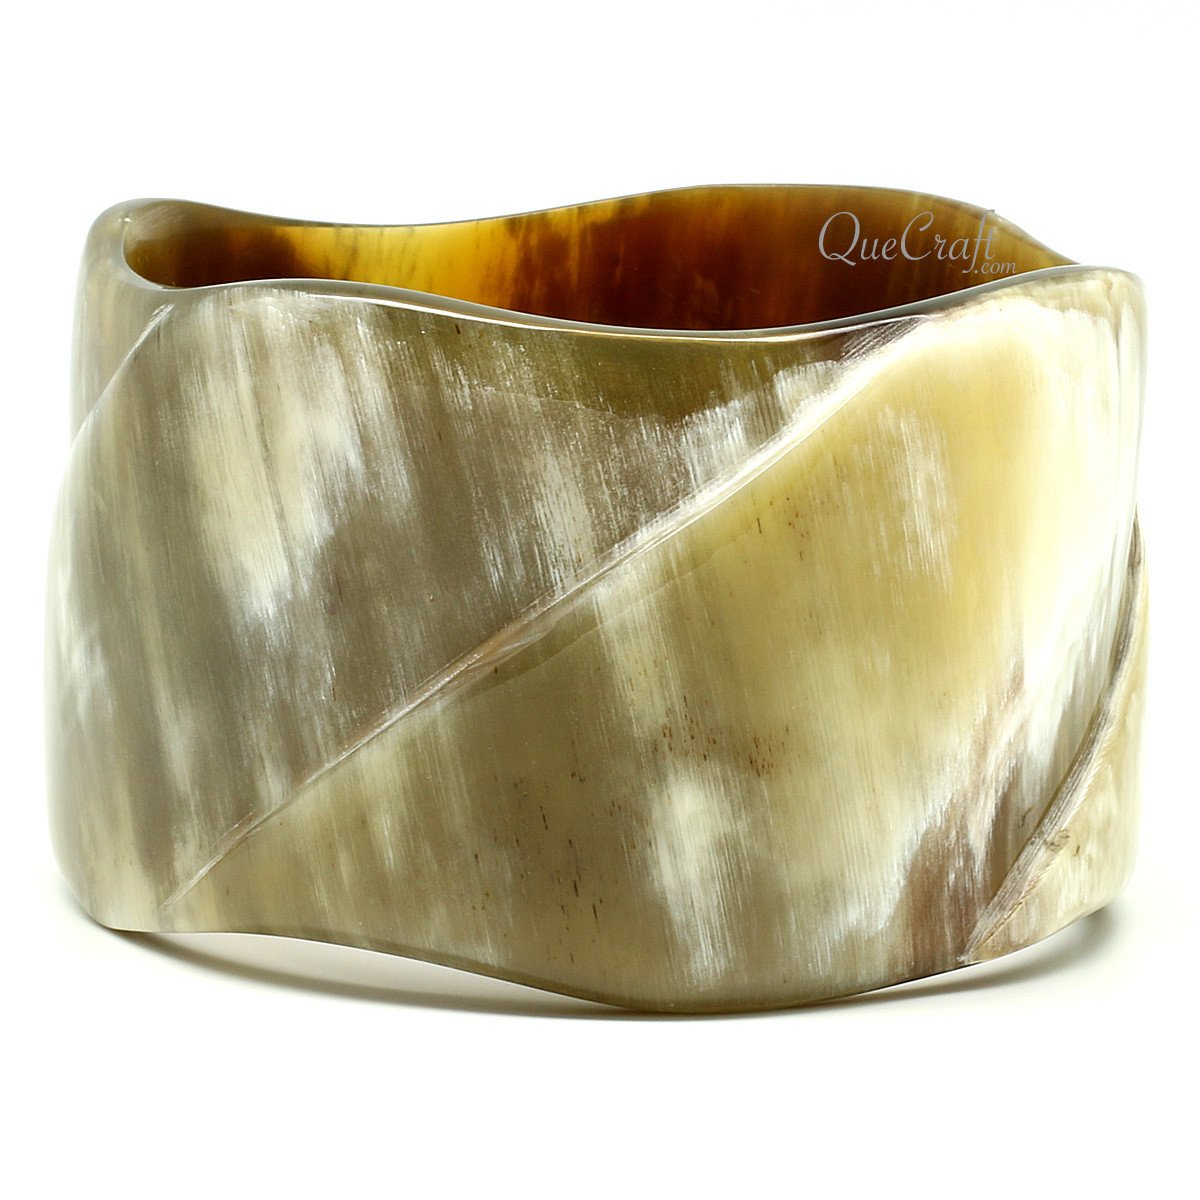 Horn Bangle Bracelet #9884 - HORN.JEWELRY by QueCraft